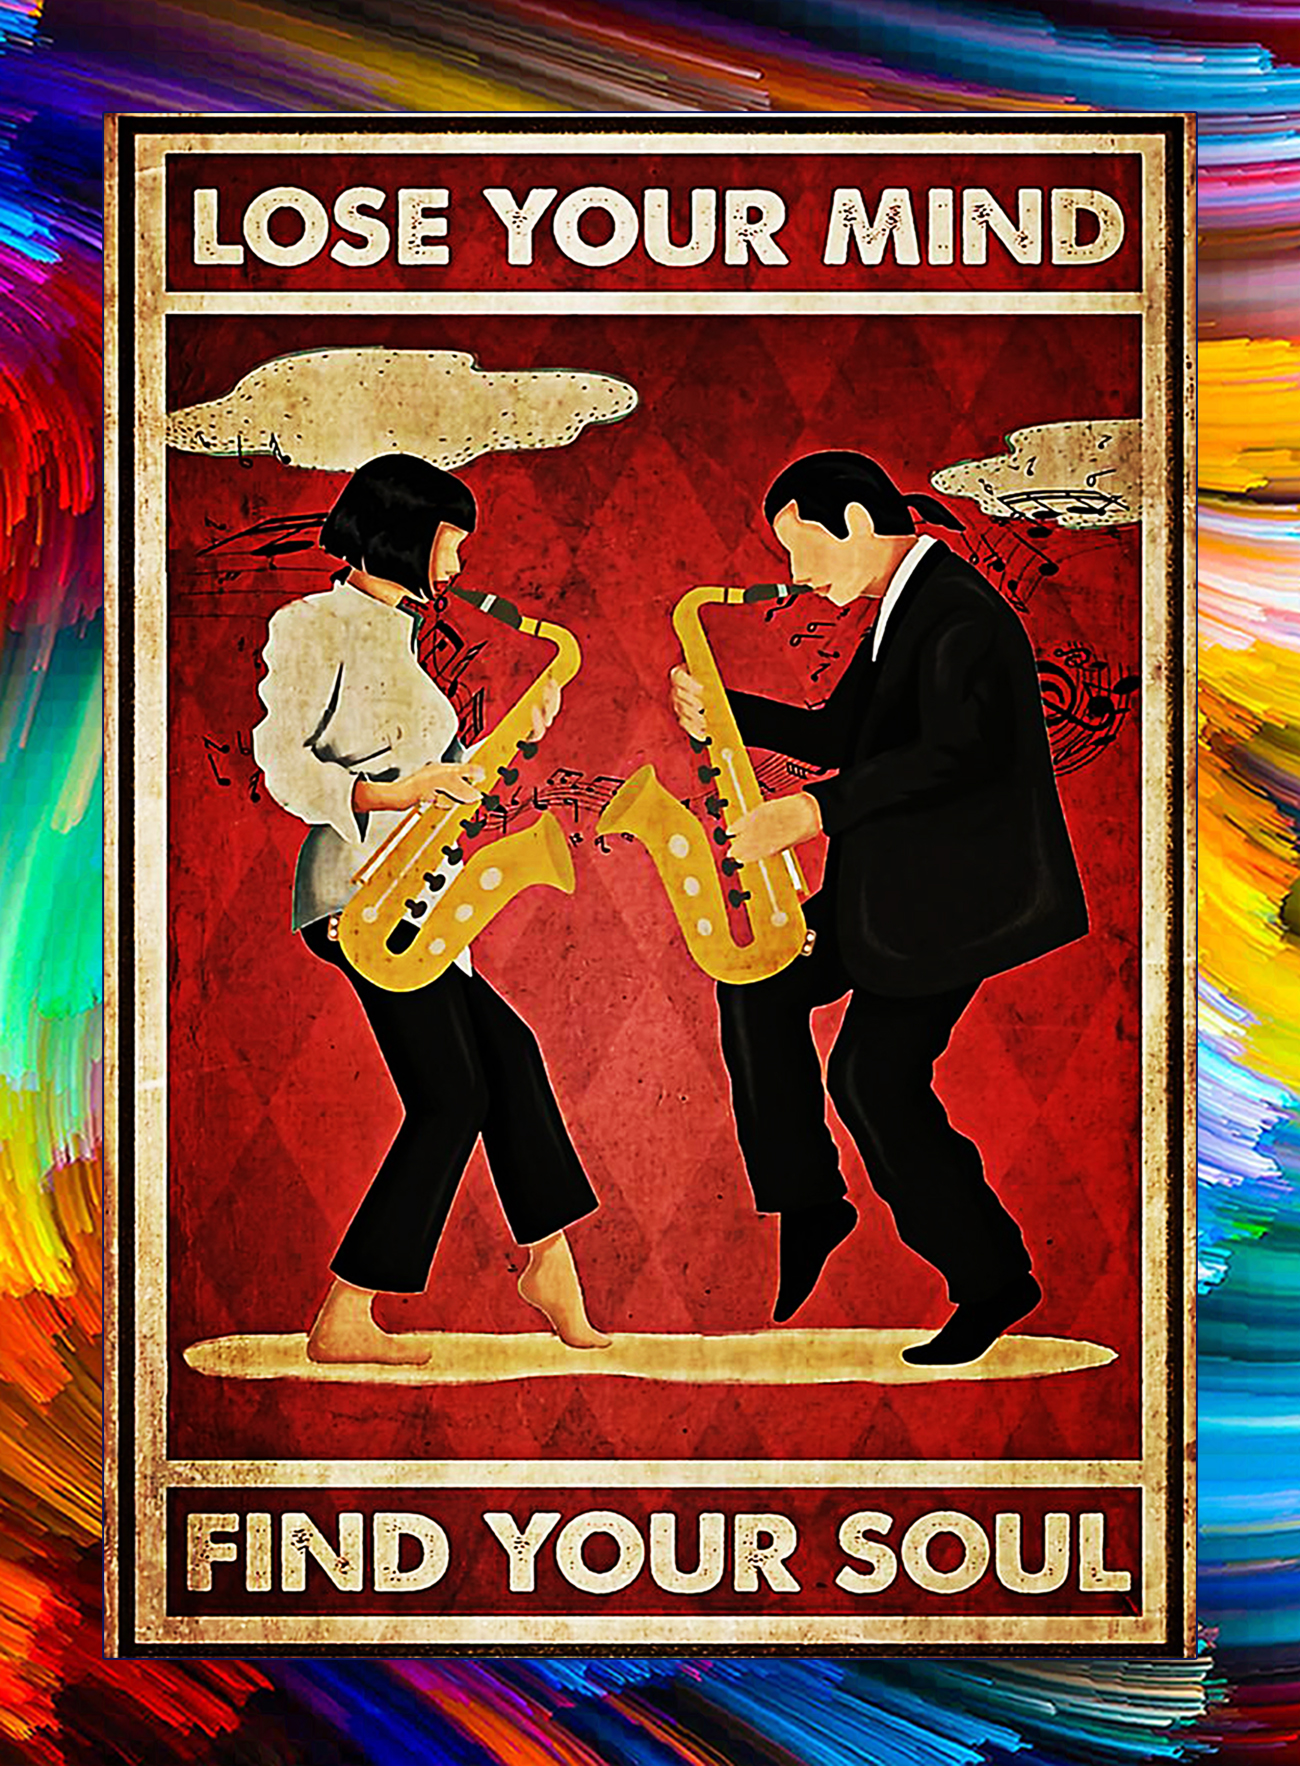 Saxophone pulp fiction lose your mind find your soul poster - A1